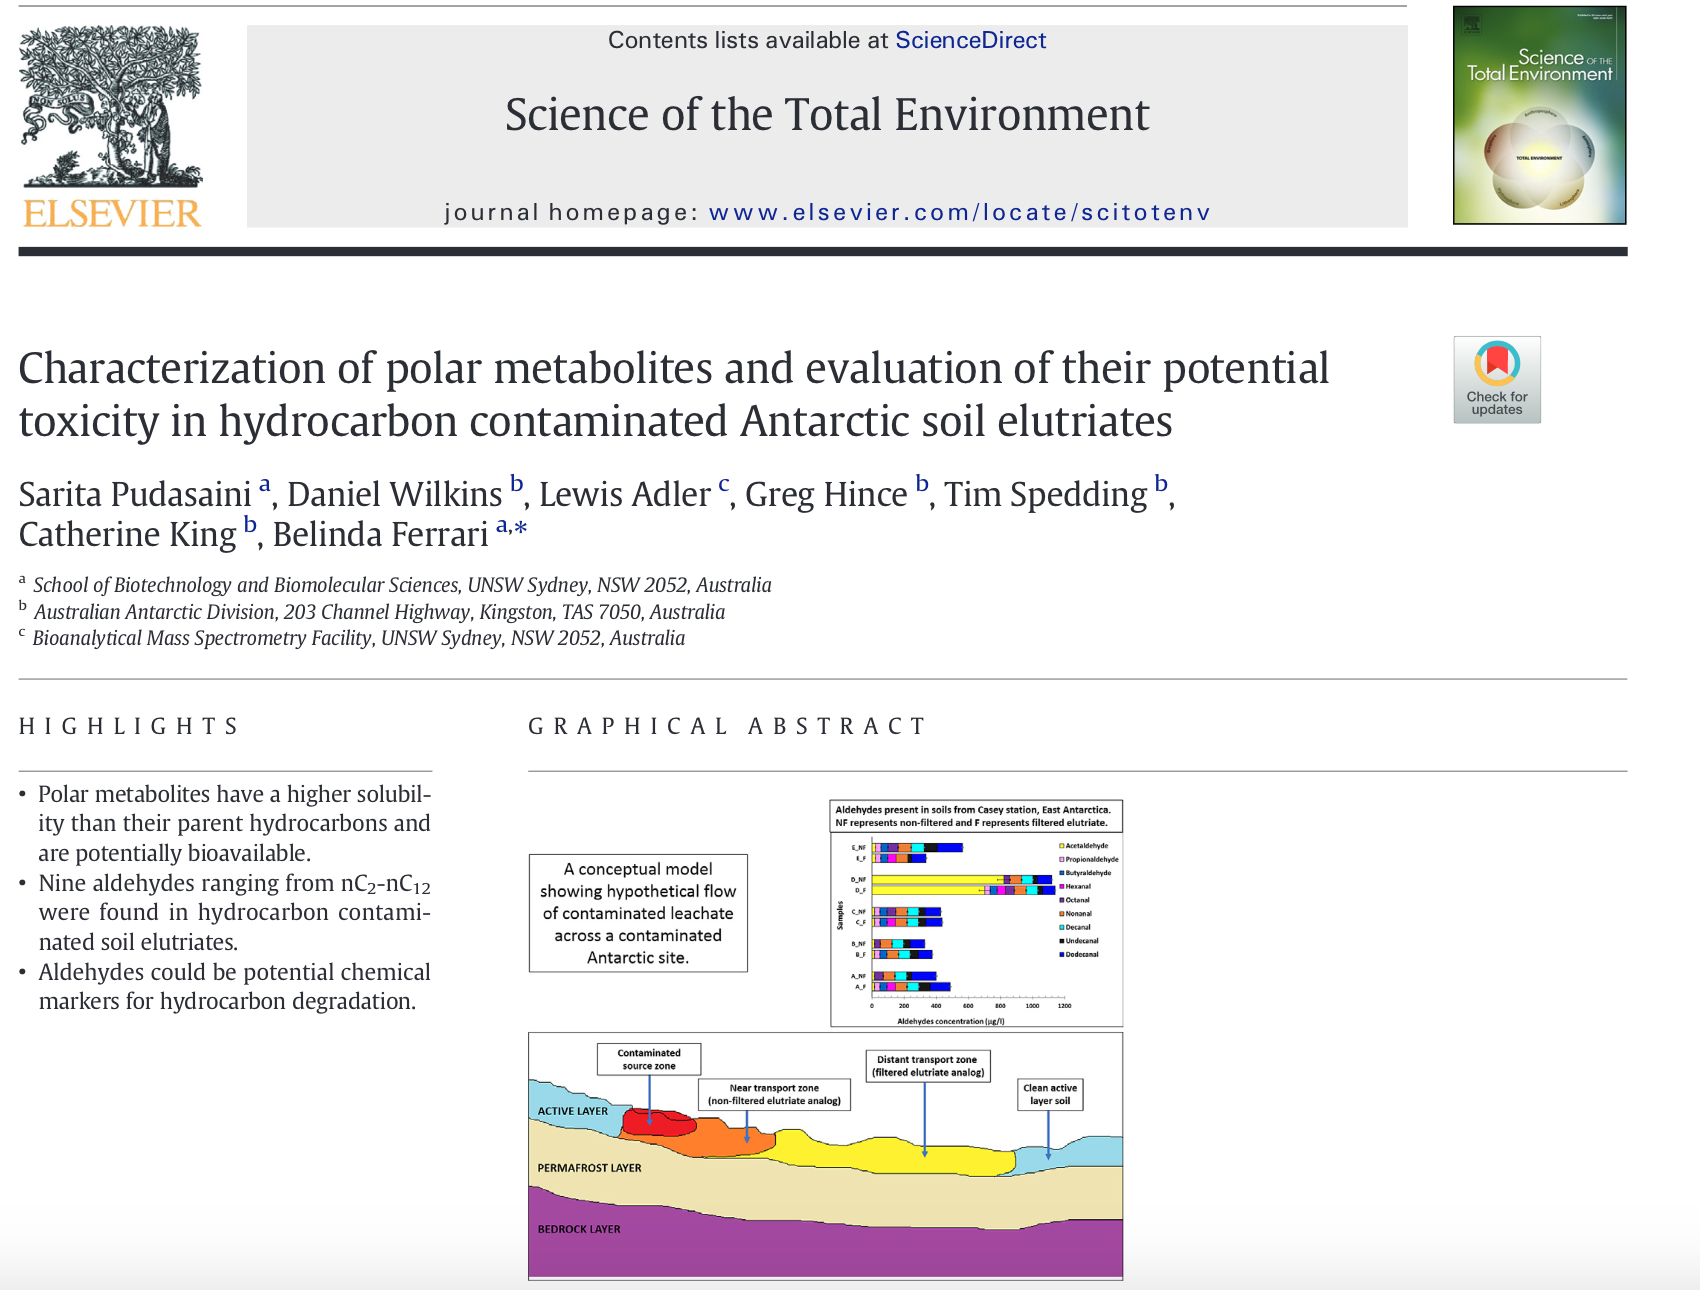 New paper! If you would like to know more about  Polar Metabolites and their Potential Toxicity  clic  here  for more info.